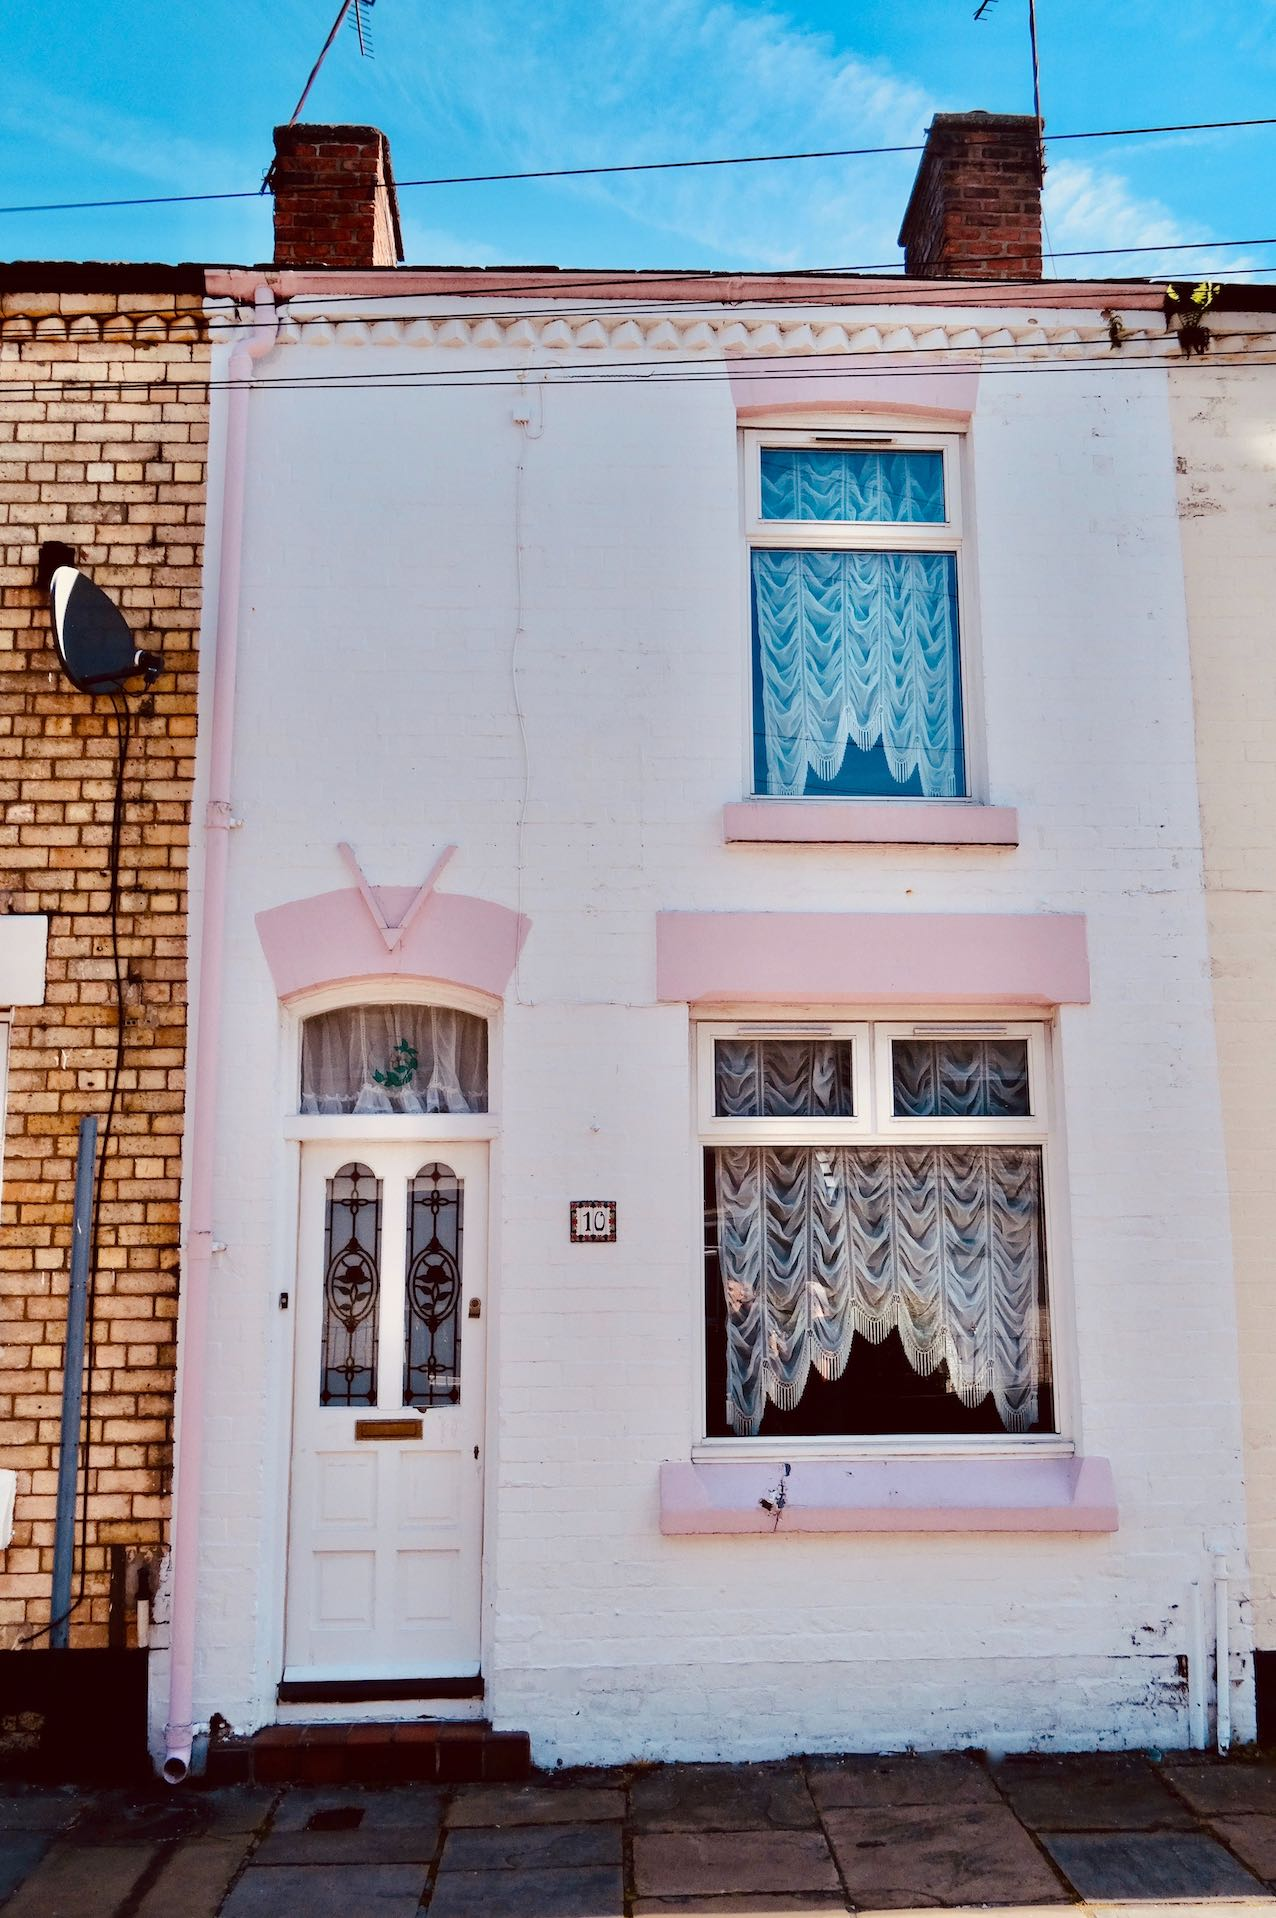 Ringo Starr's childhood home Admiral Grove Liverpool